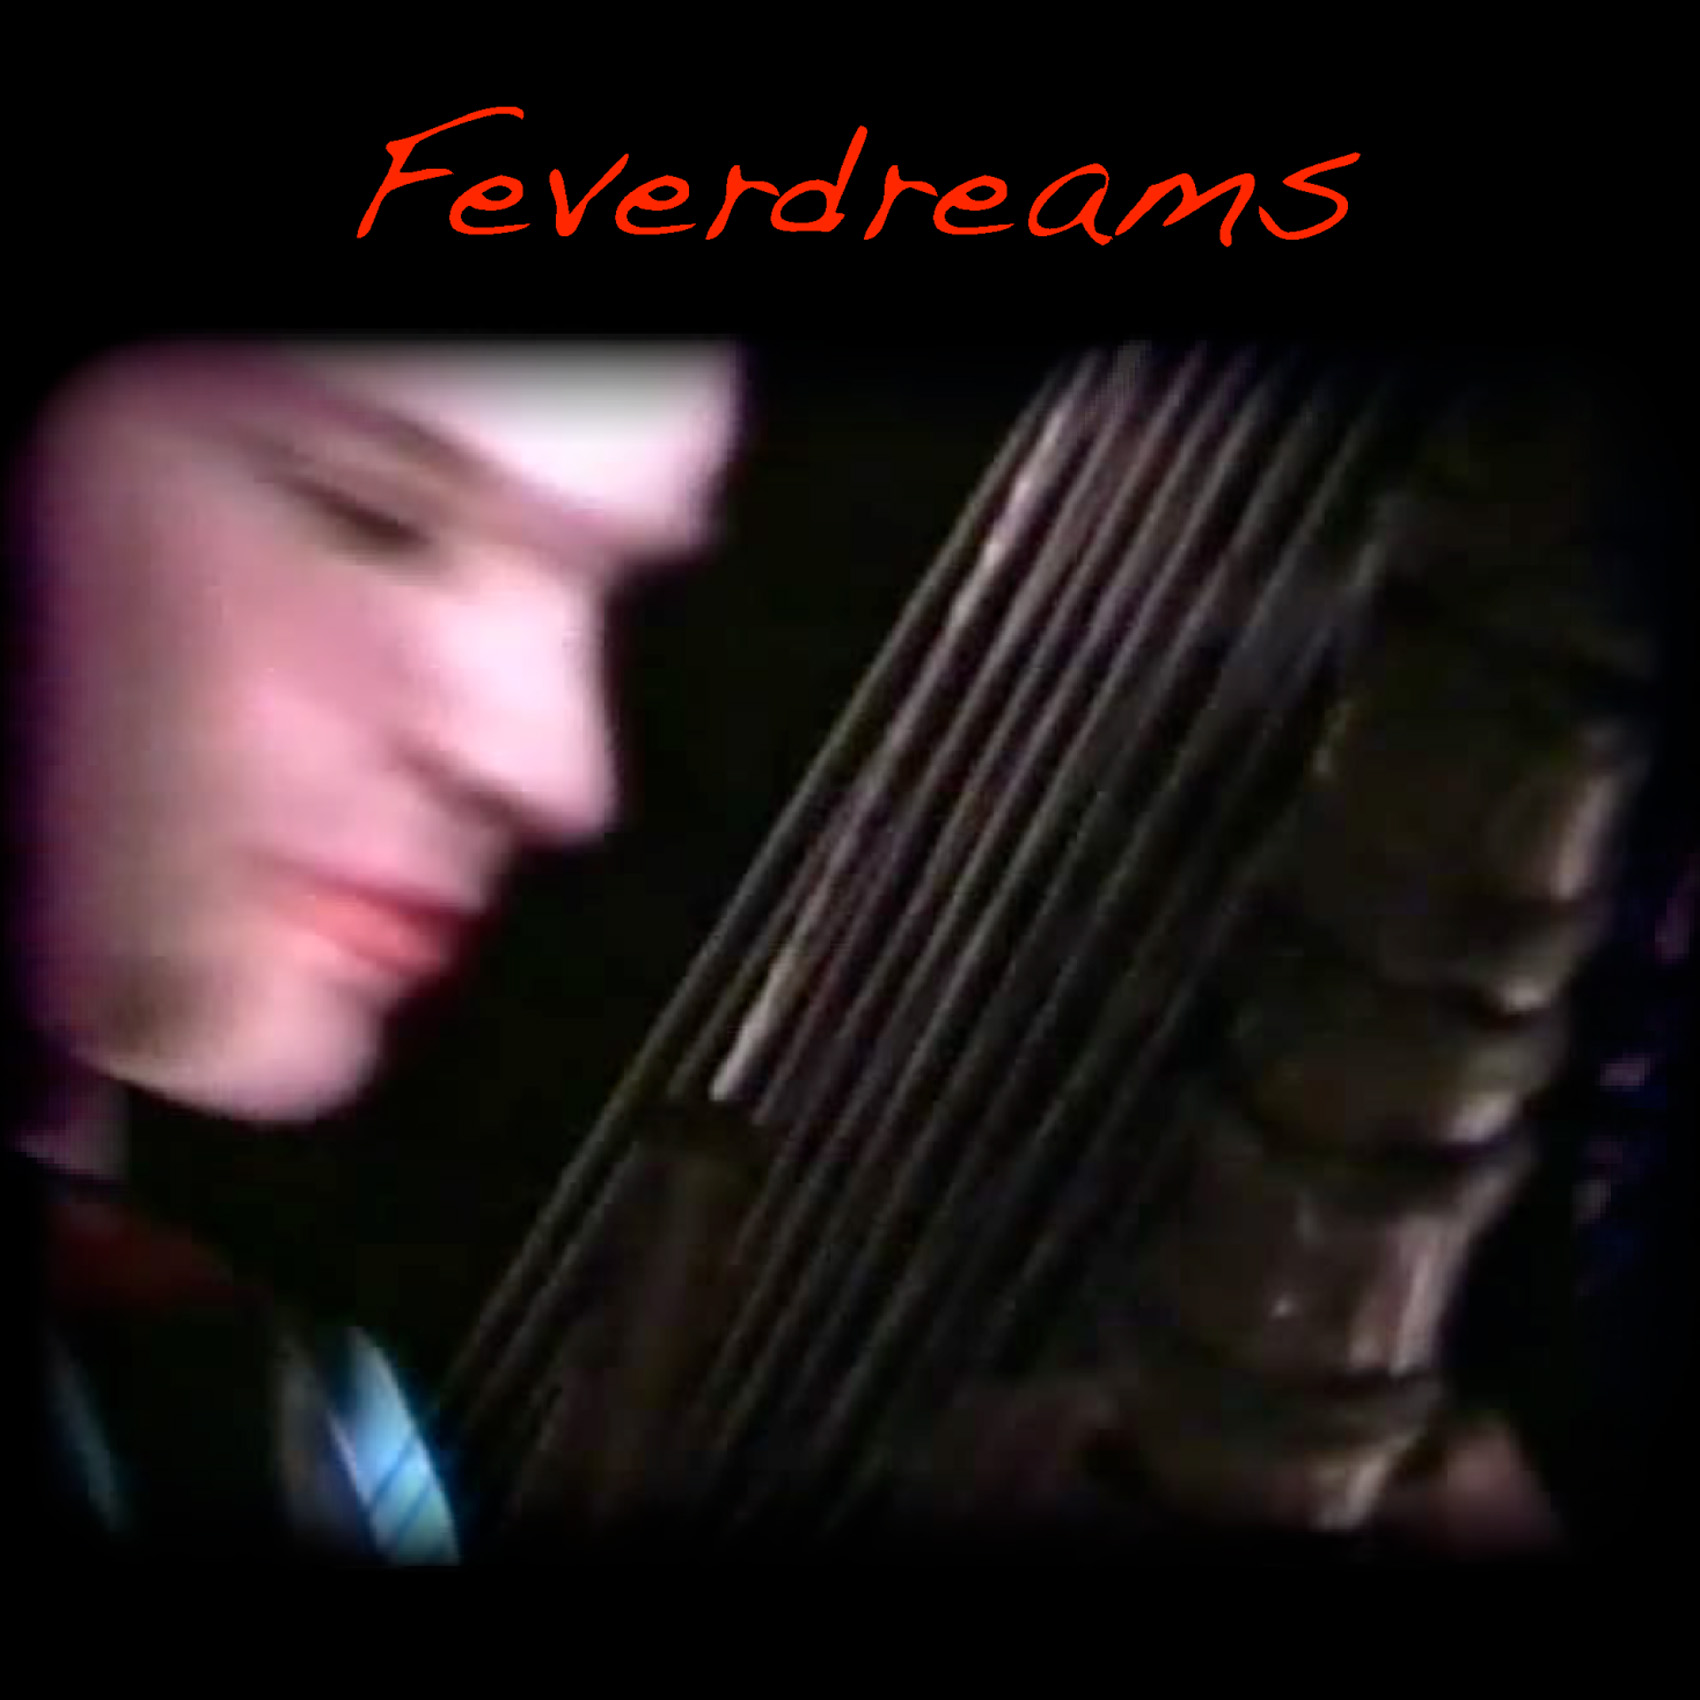 Feverdreams Cover_edited-1.jpg